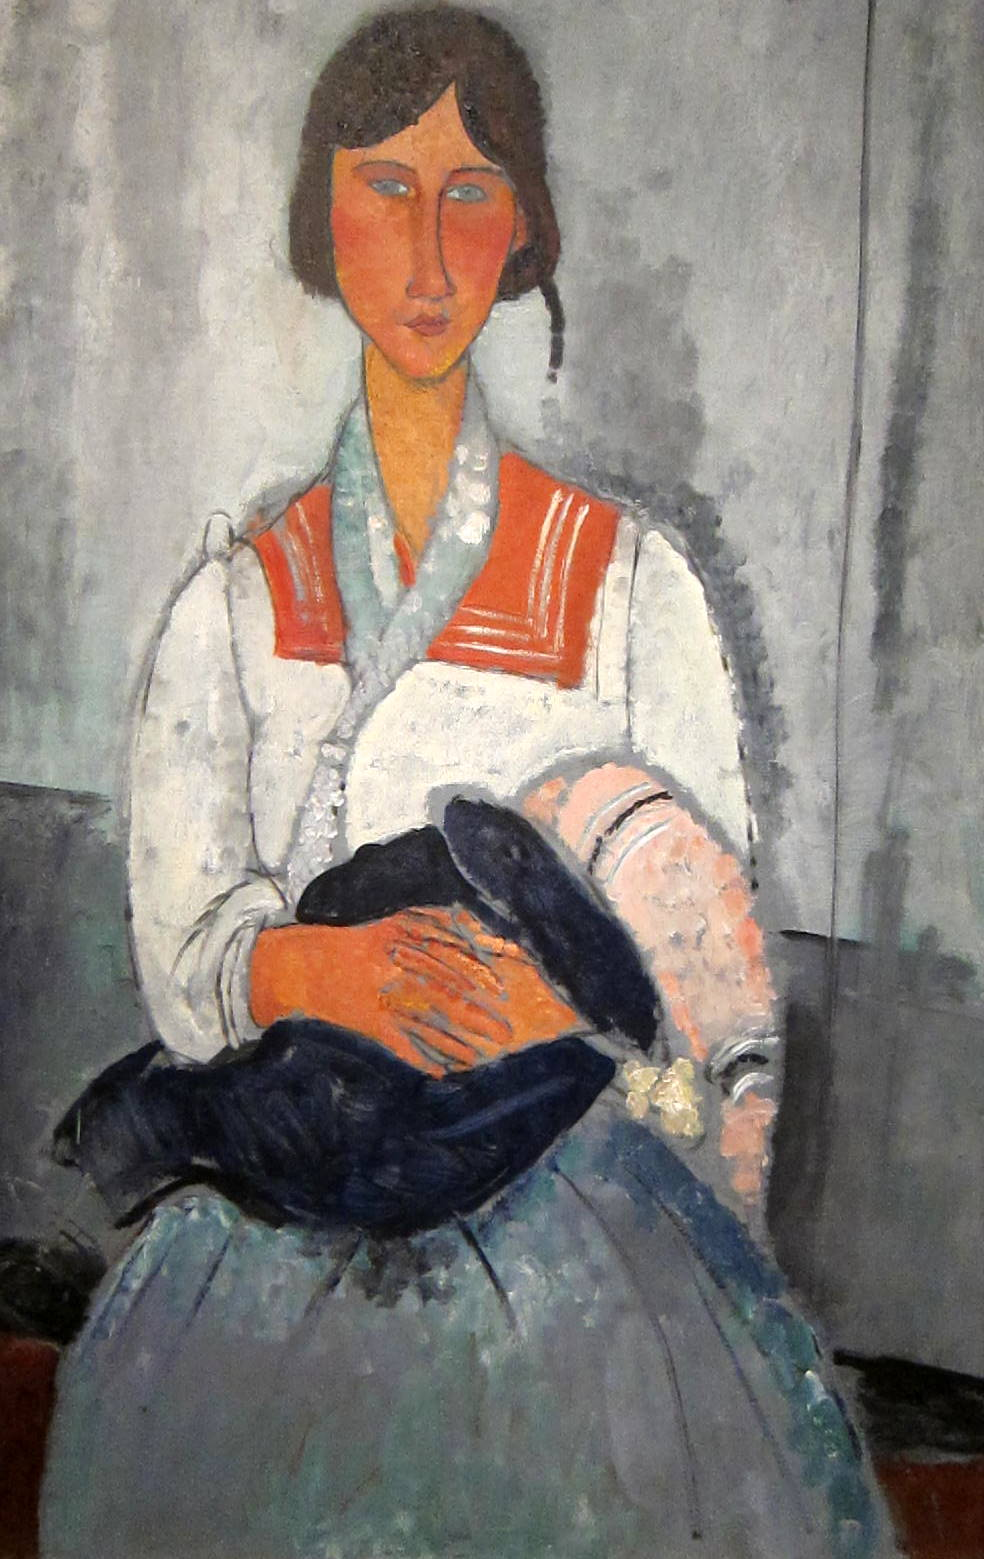 Gypsy Woman and Baby, Amedeo Modigliani